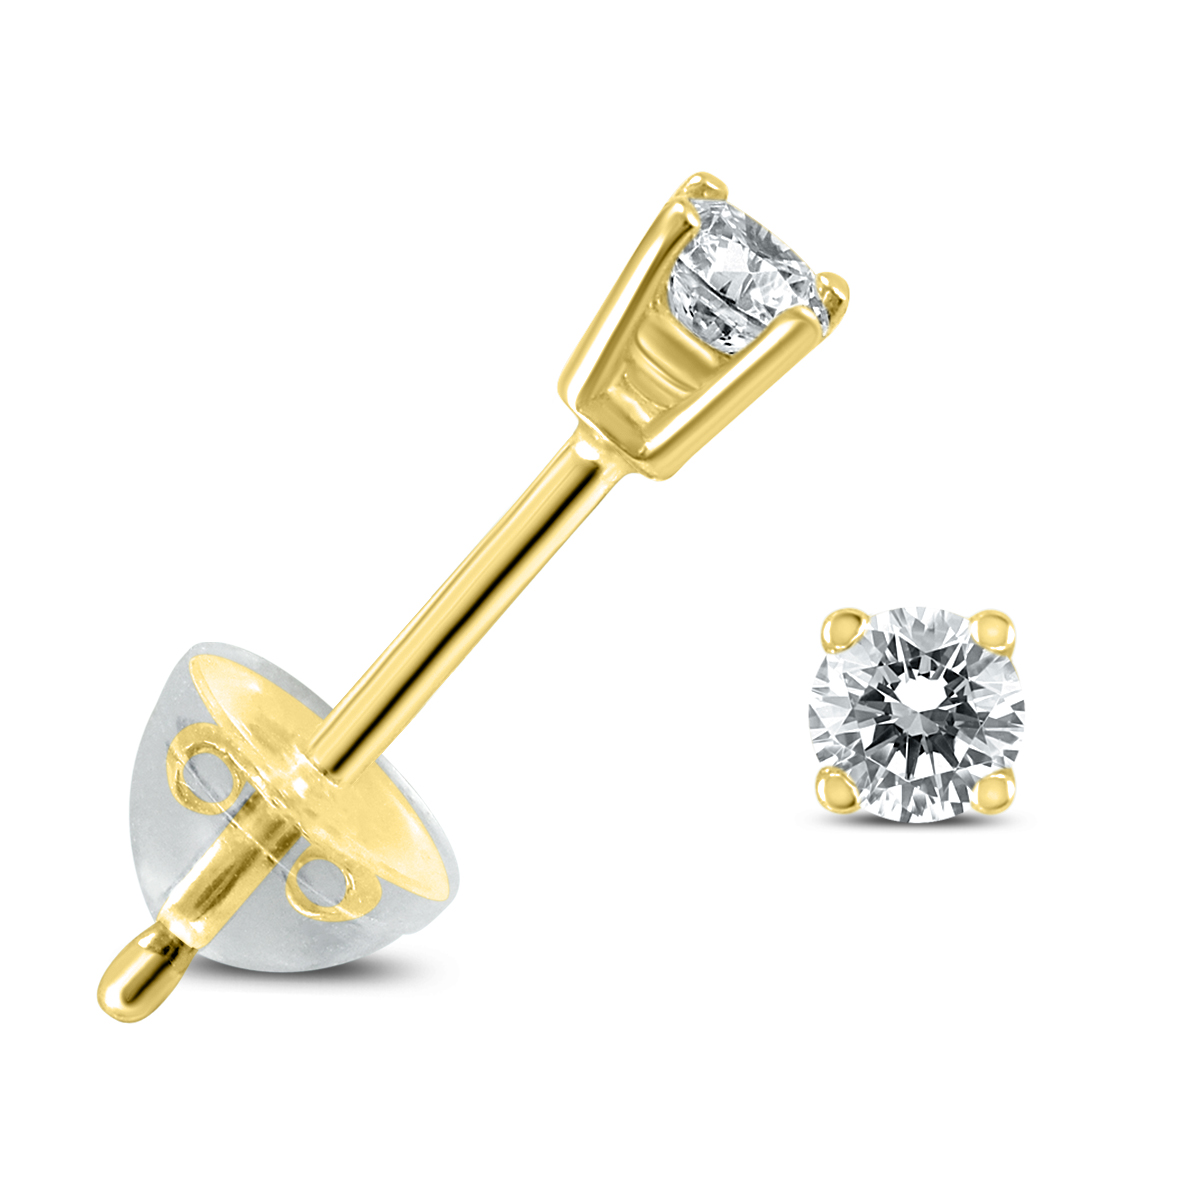 .08CTW Round Diamond Solitaire Stud Earrings In 14k Yellow Gold with Silicon Backs